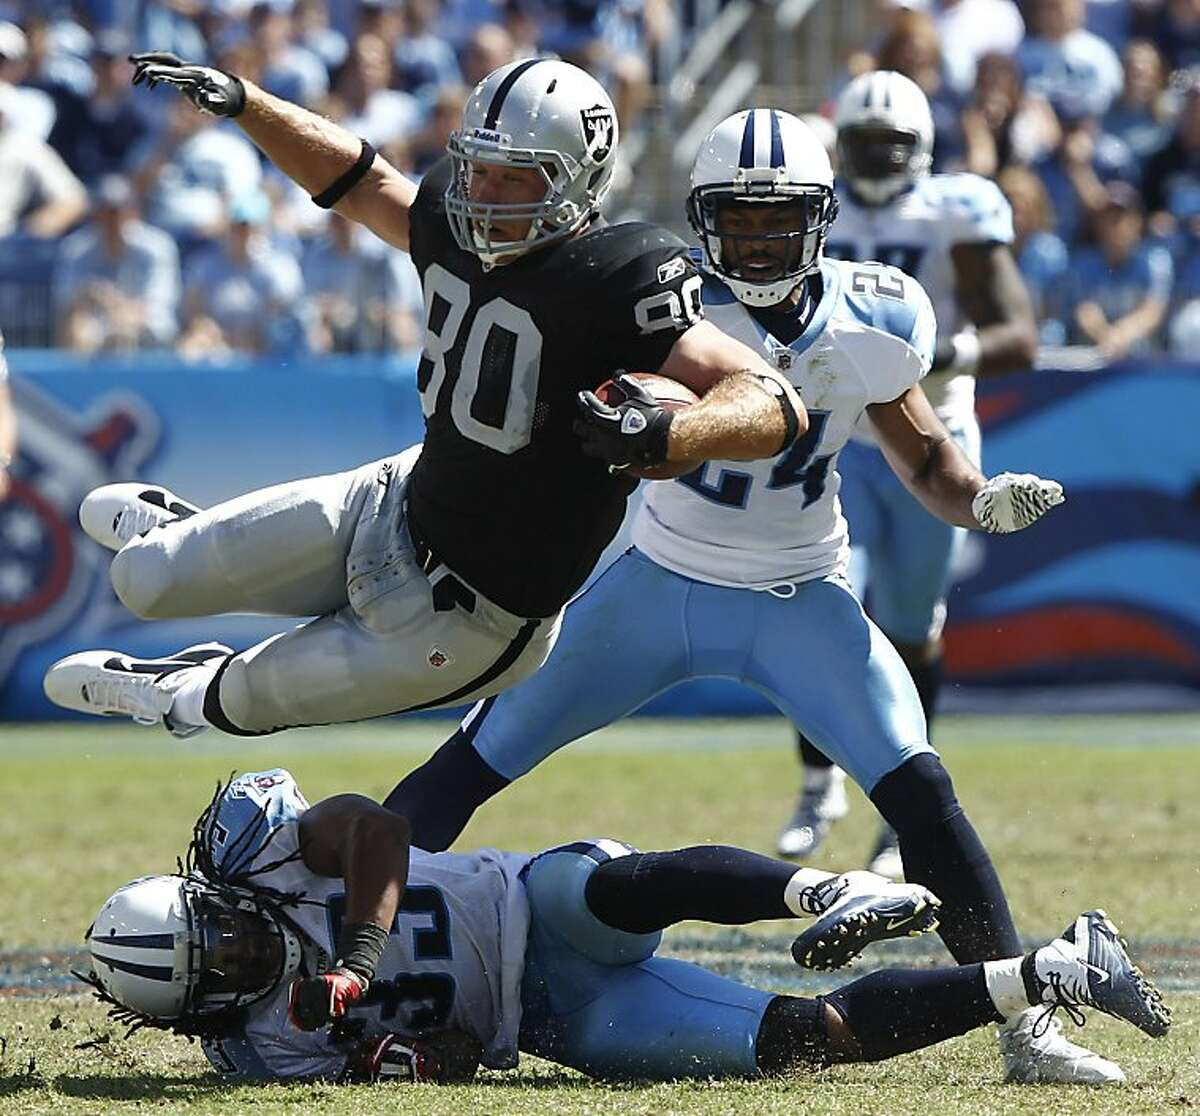 Oakland Raiders tight end Zach Miller (80) is upended by Tennessee Titans defender Michael Griffin (33) in the second half of their NFL football game at LP Field in Nashville, Tenn., Sunday, Sept. 12, 2010.